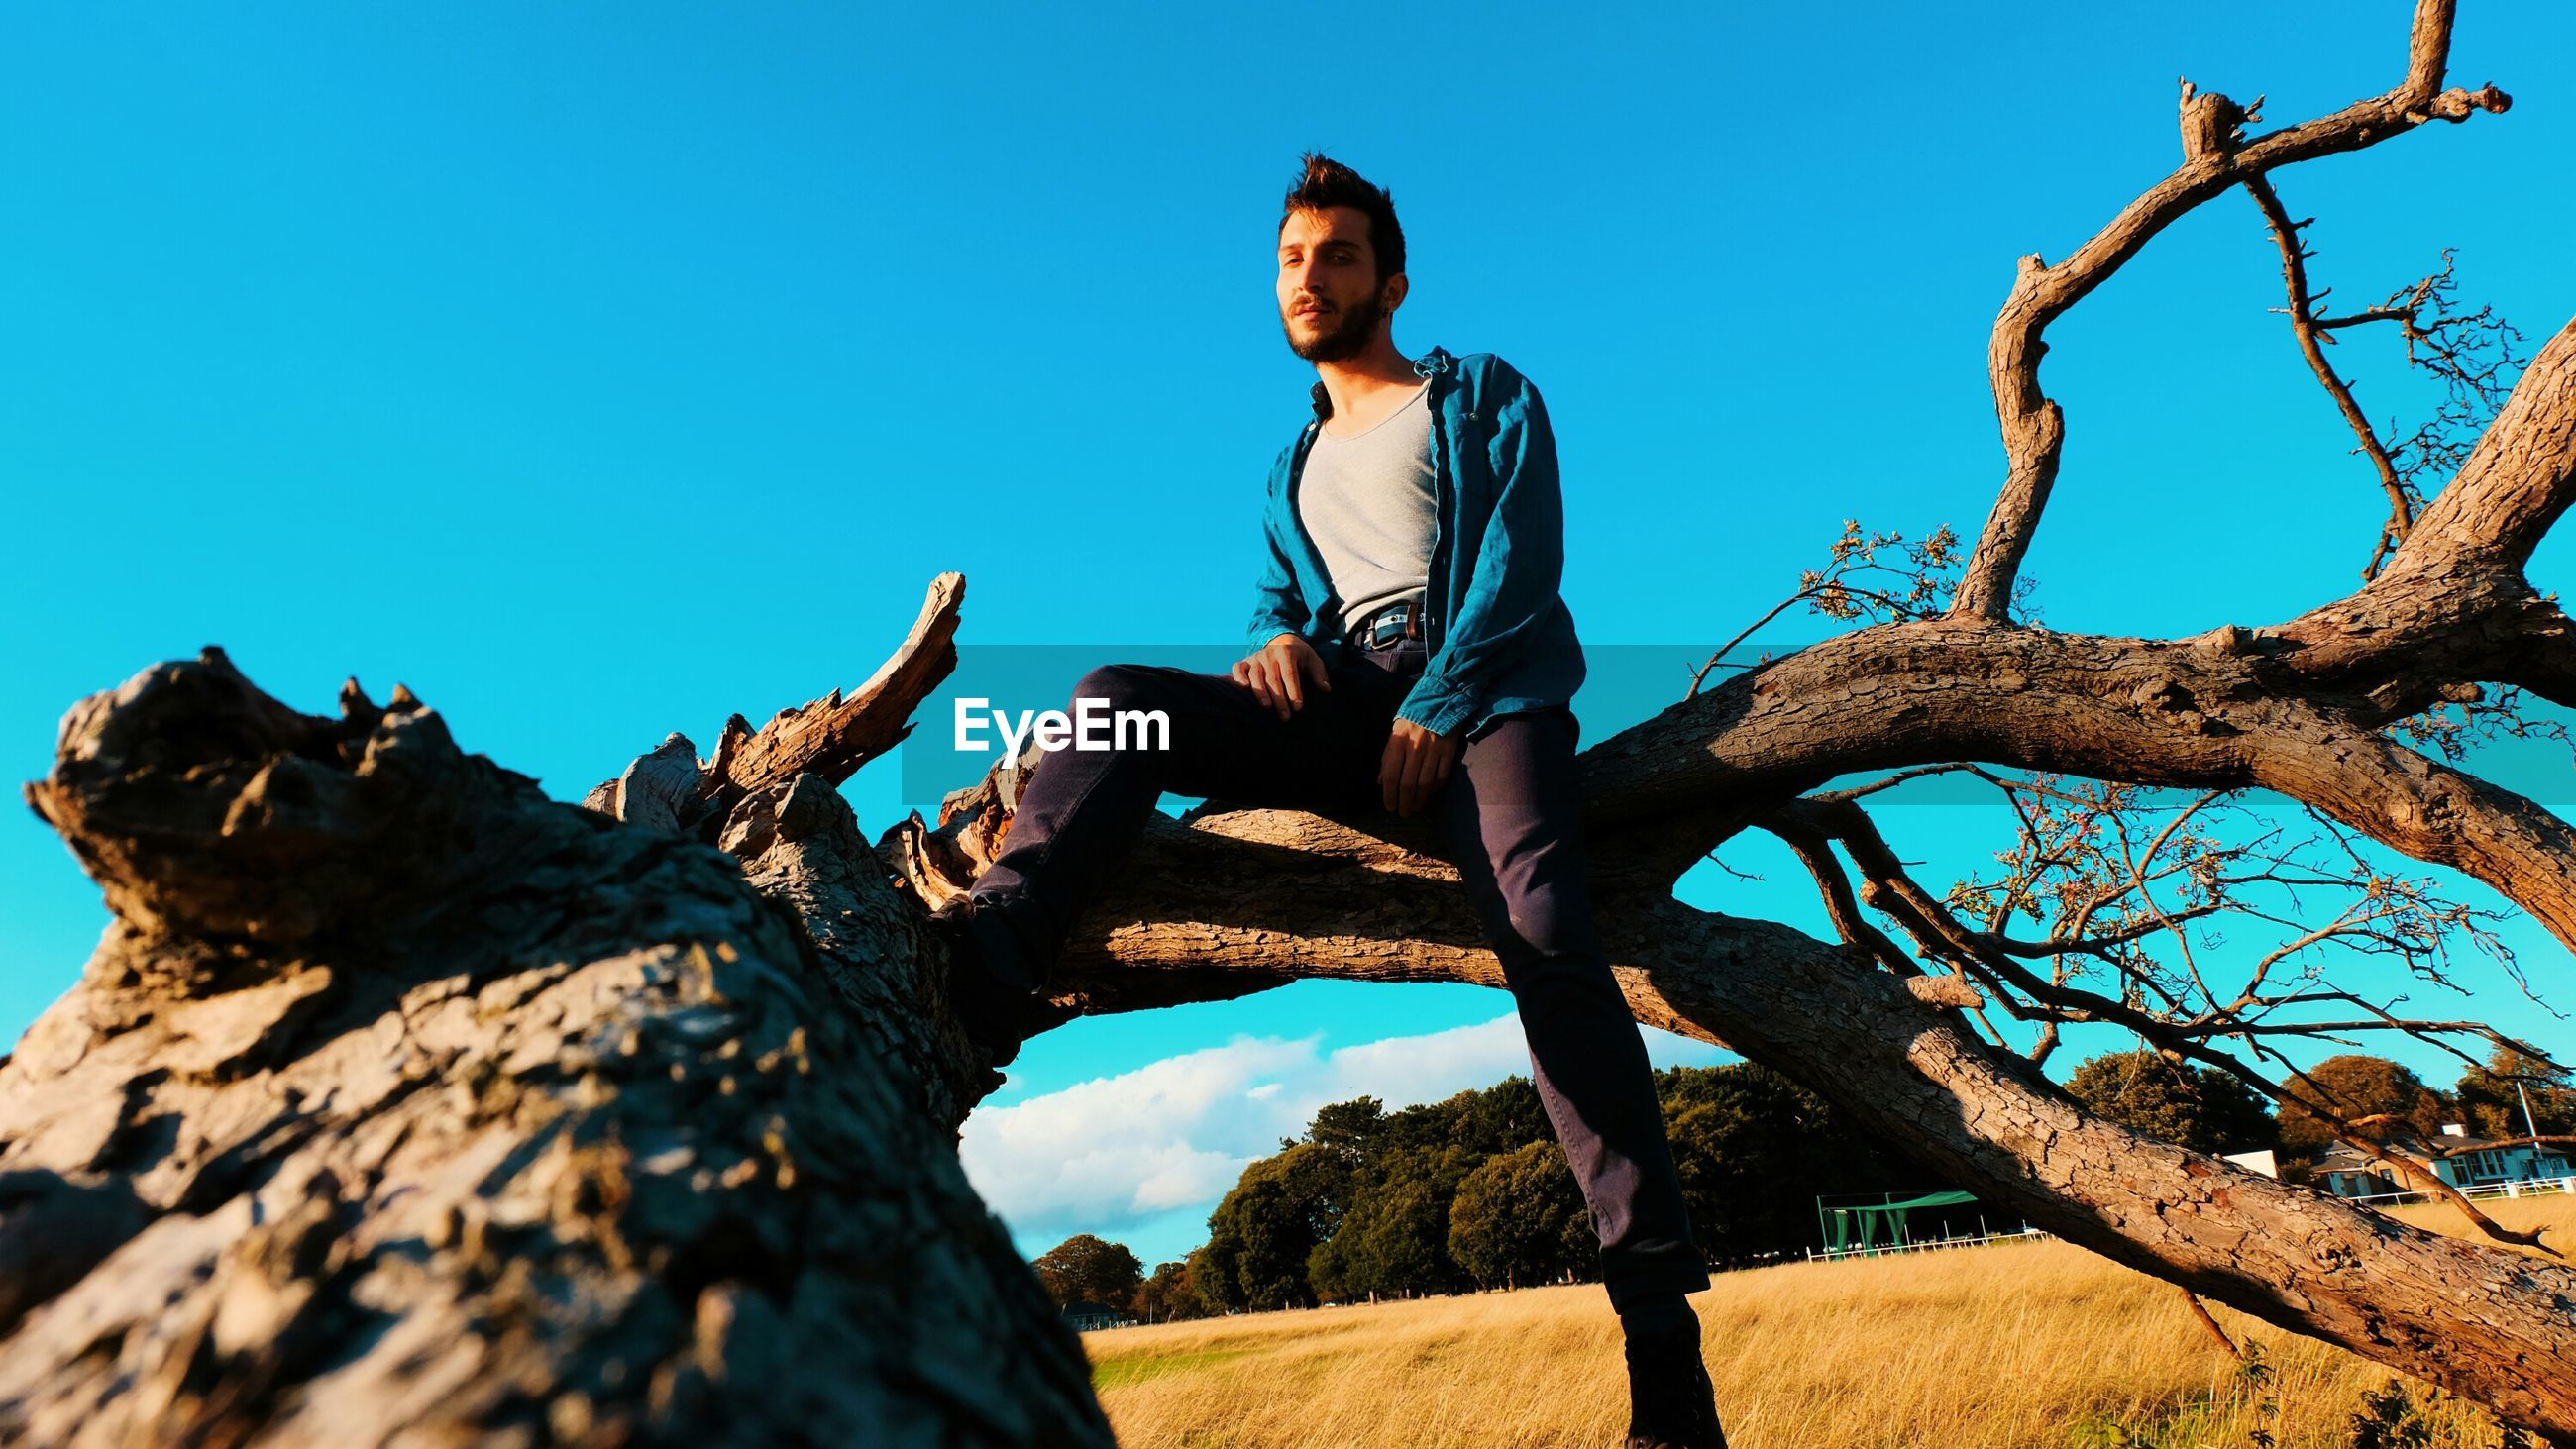 Low angle view of man sitting on fallen tree against clear blue sky